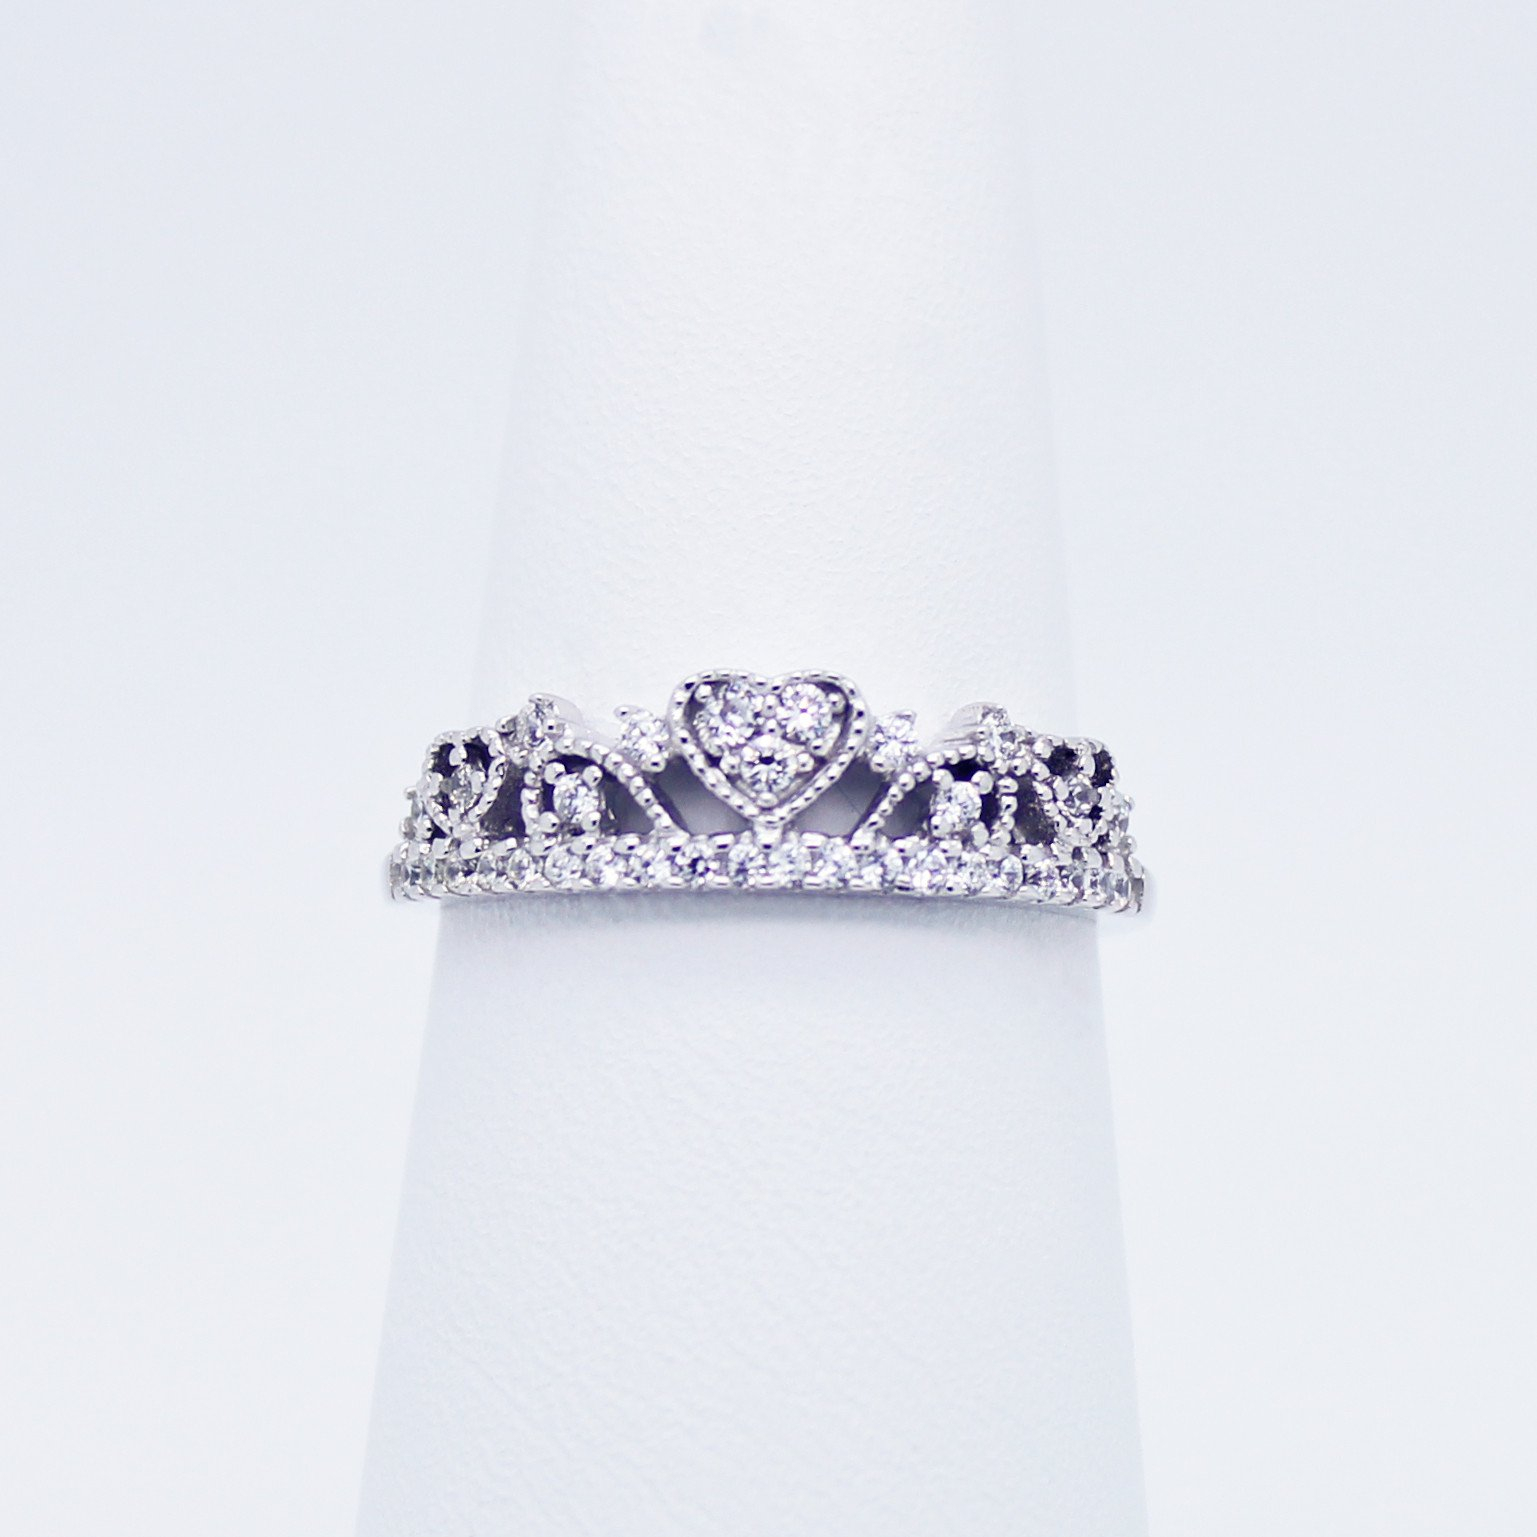 Image of Heart crown sterling silver ring